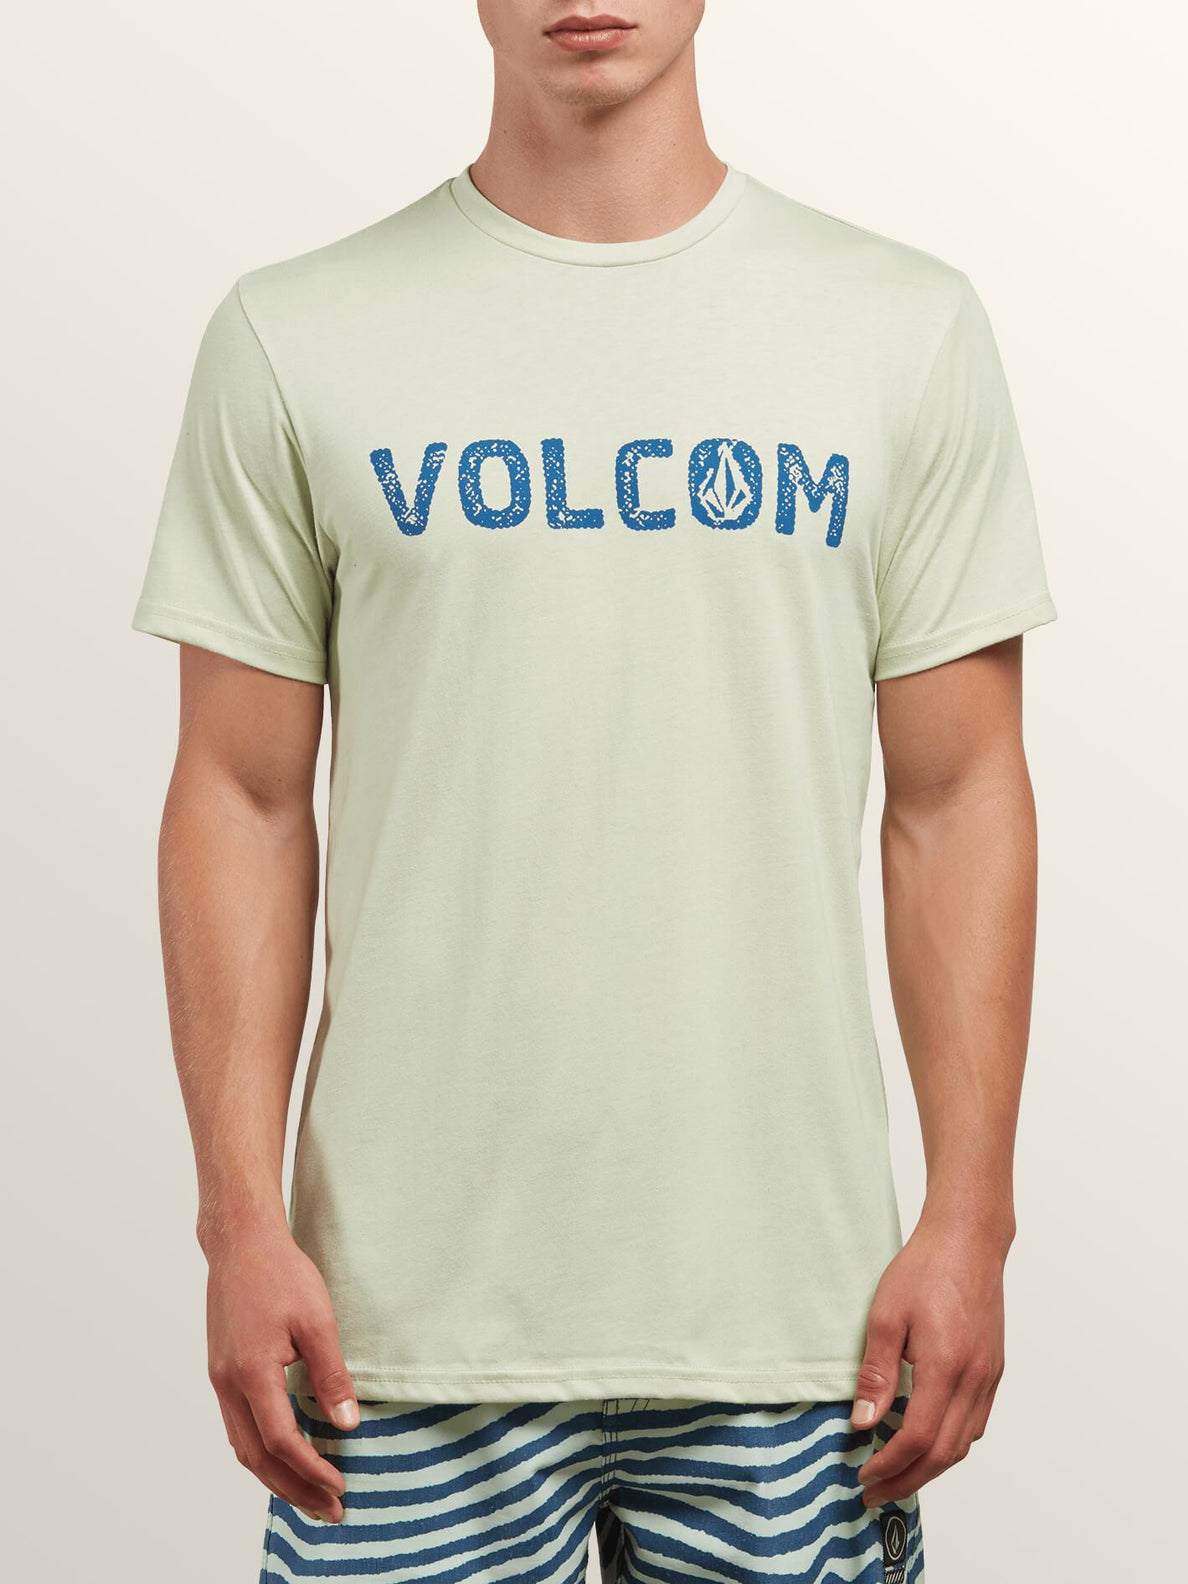 Bold Short Sleeve Tee In Mist Green, Front View